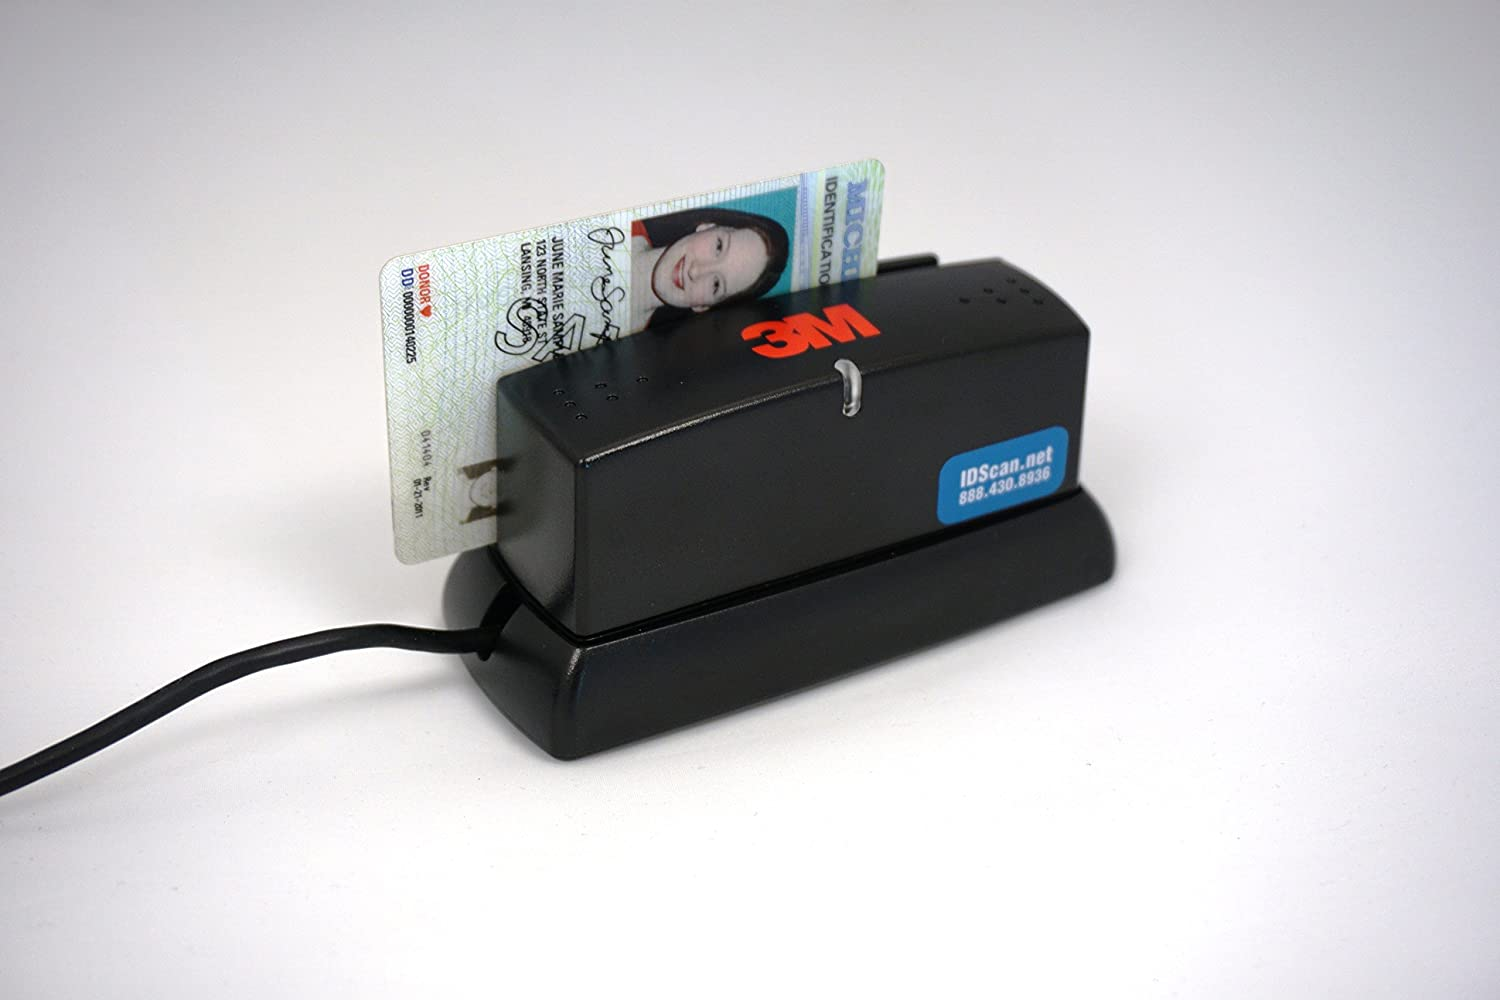 3m Cr100 Document Passport Reader Scanner Mrz Mrtds Usb Code Barcode Cr1000 Office Products